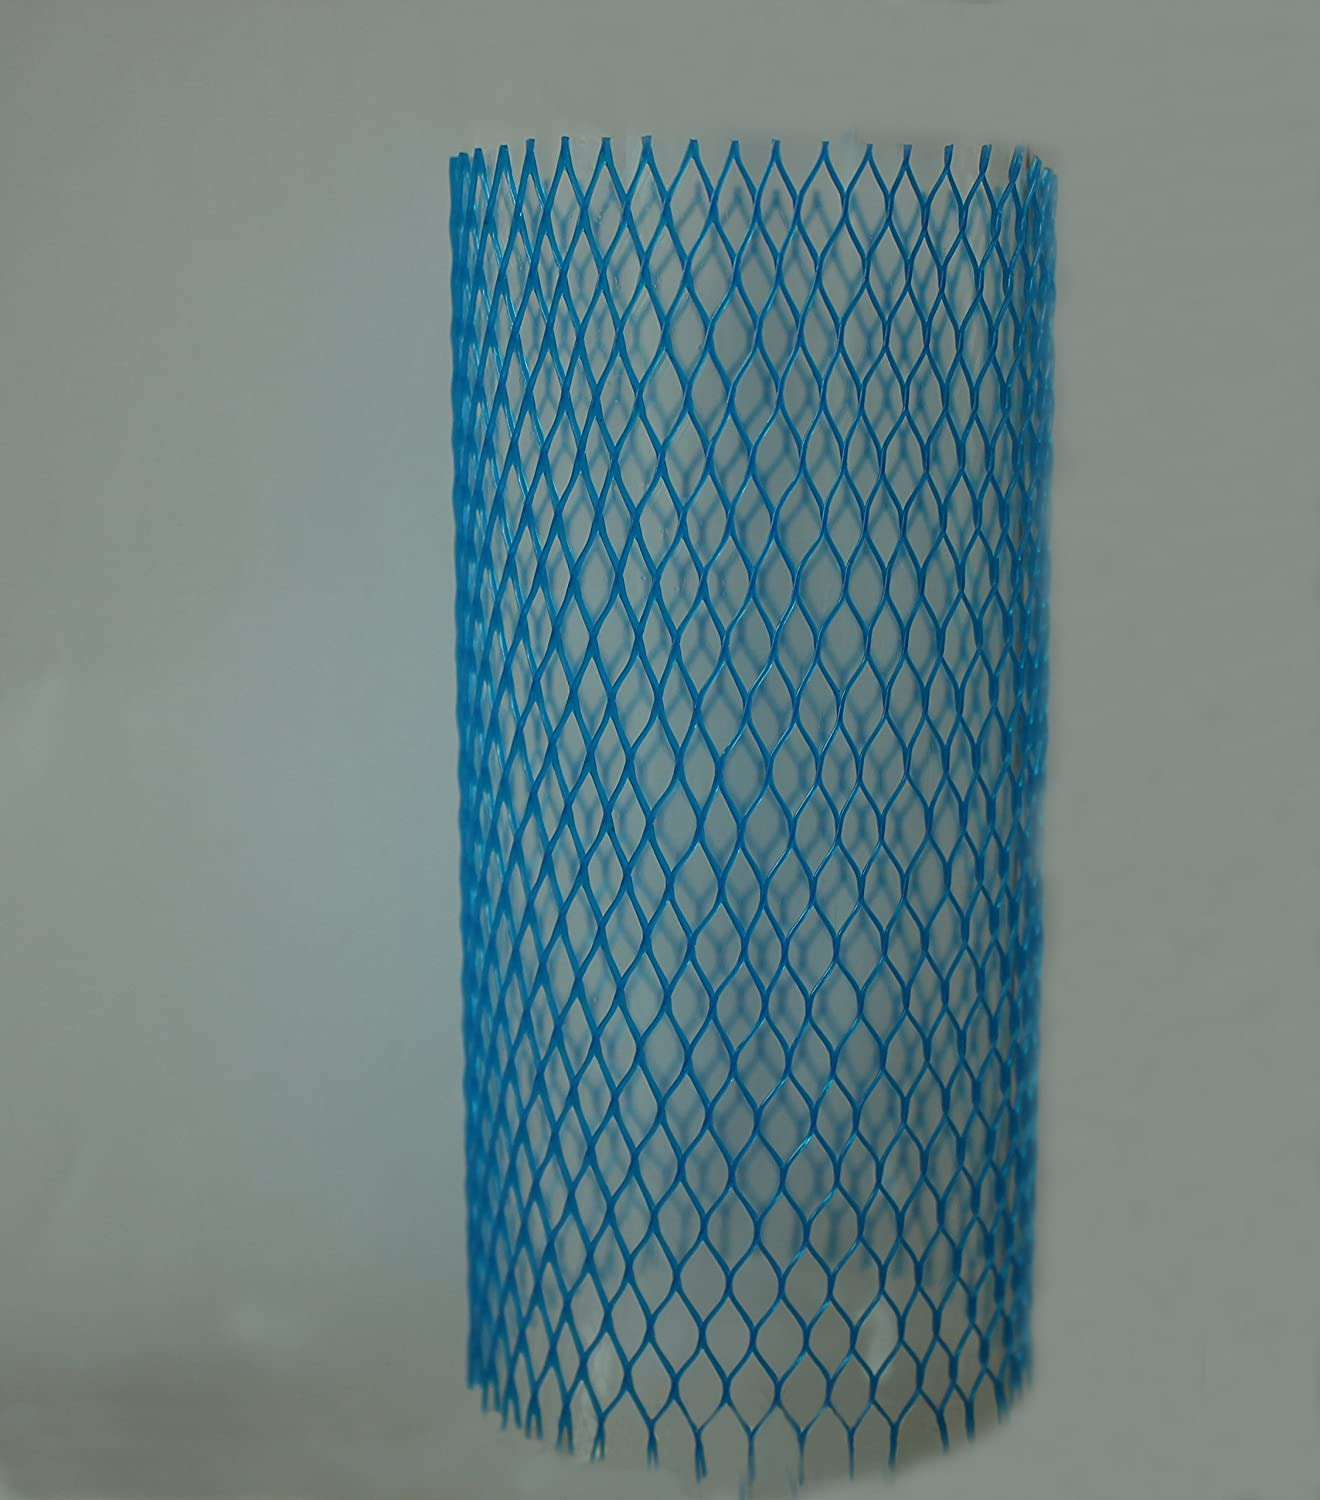 30 Pieces Blue Mesh Wine Liquor Bottle Protective Sleeves 7 Inches Long